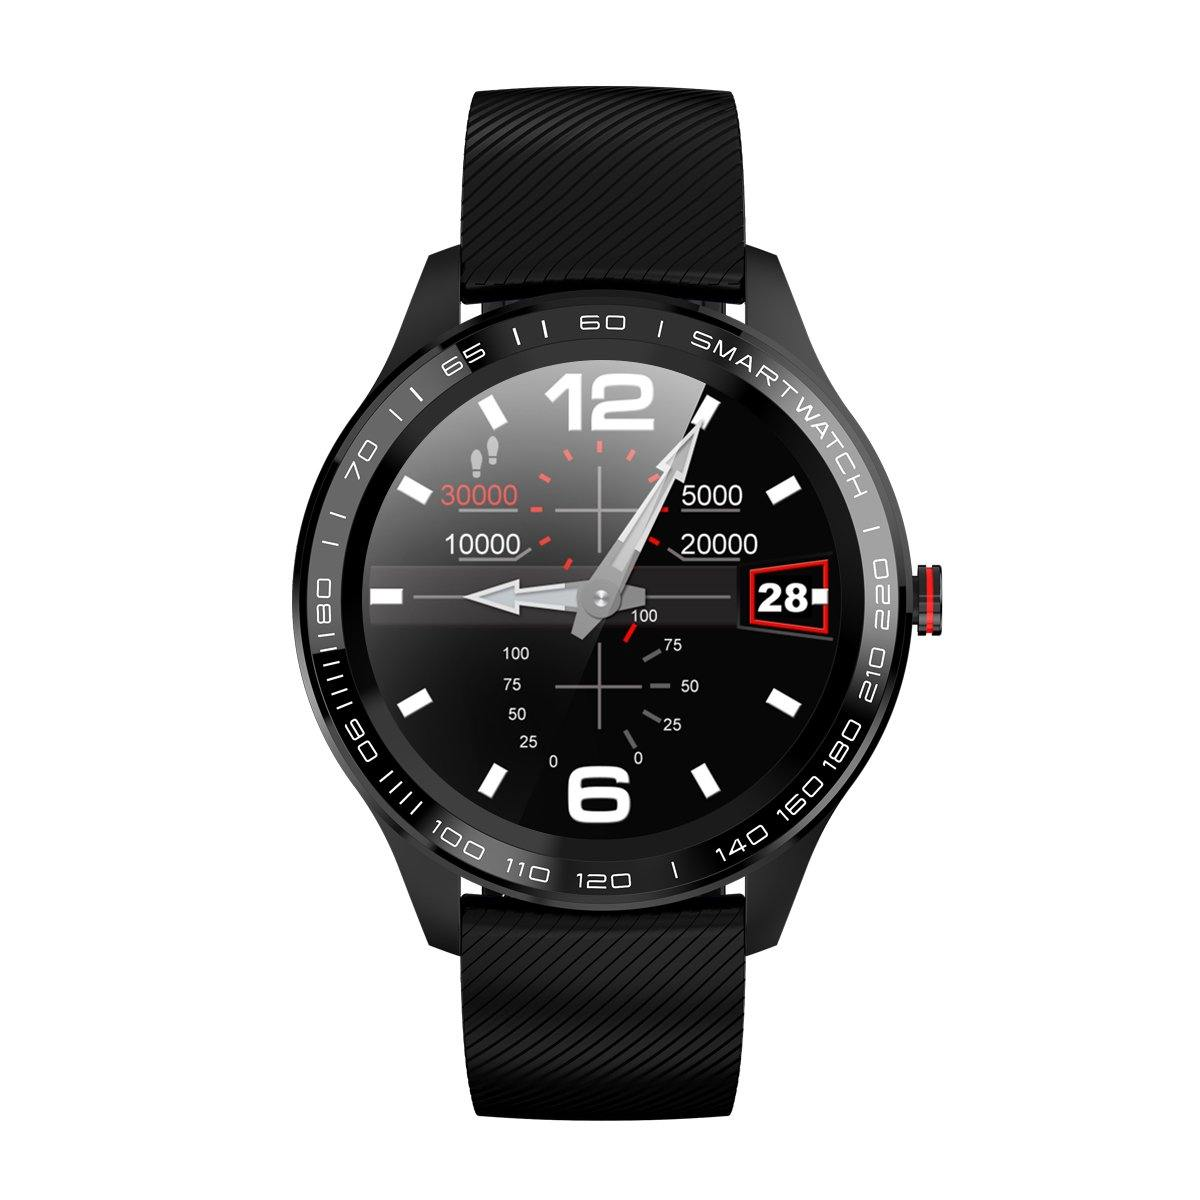 Microwear L9 Fitness/Smartwatch - Black Silicon